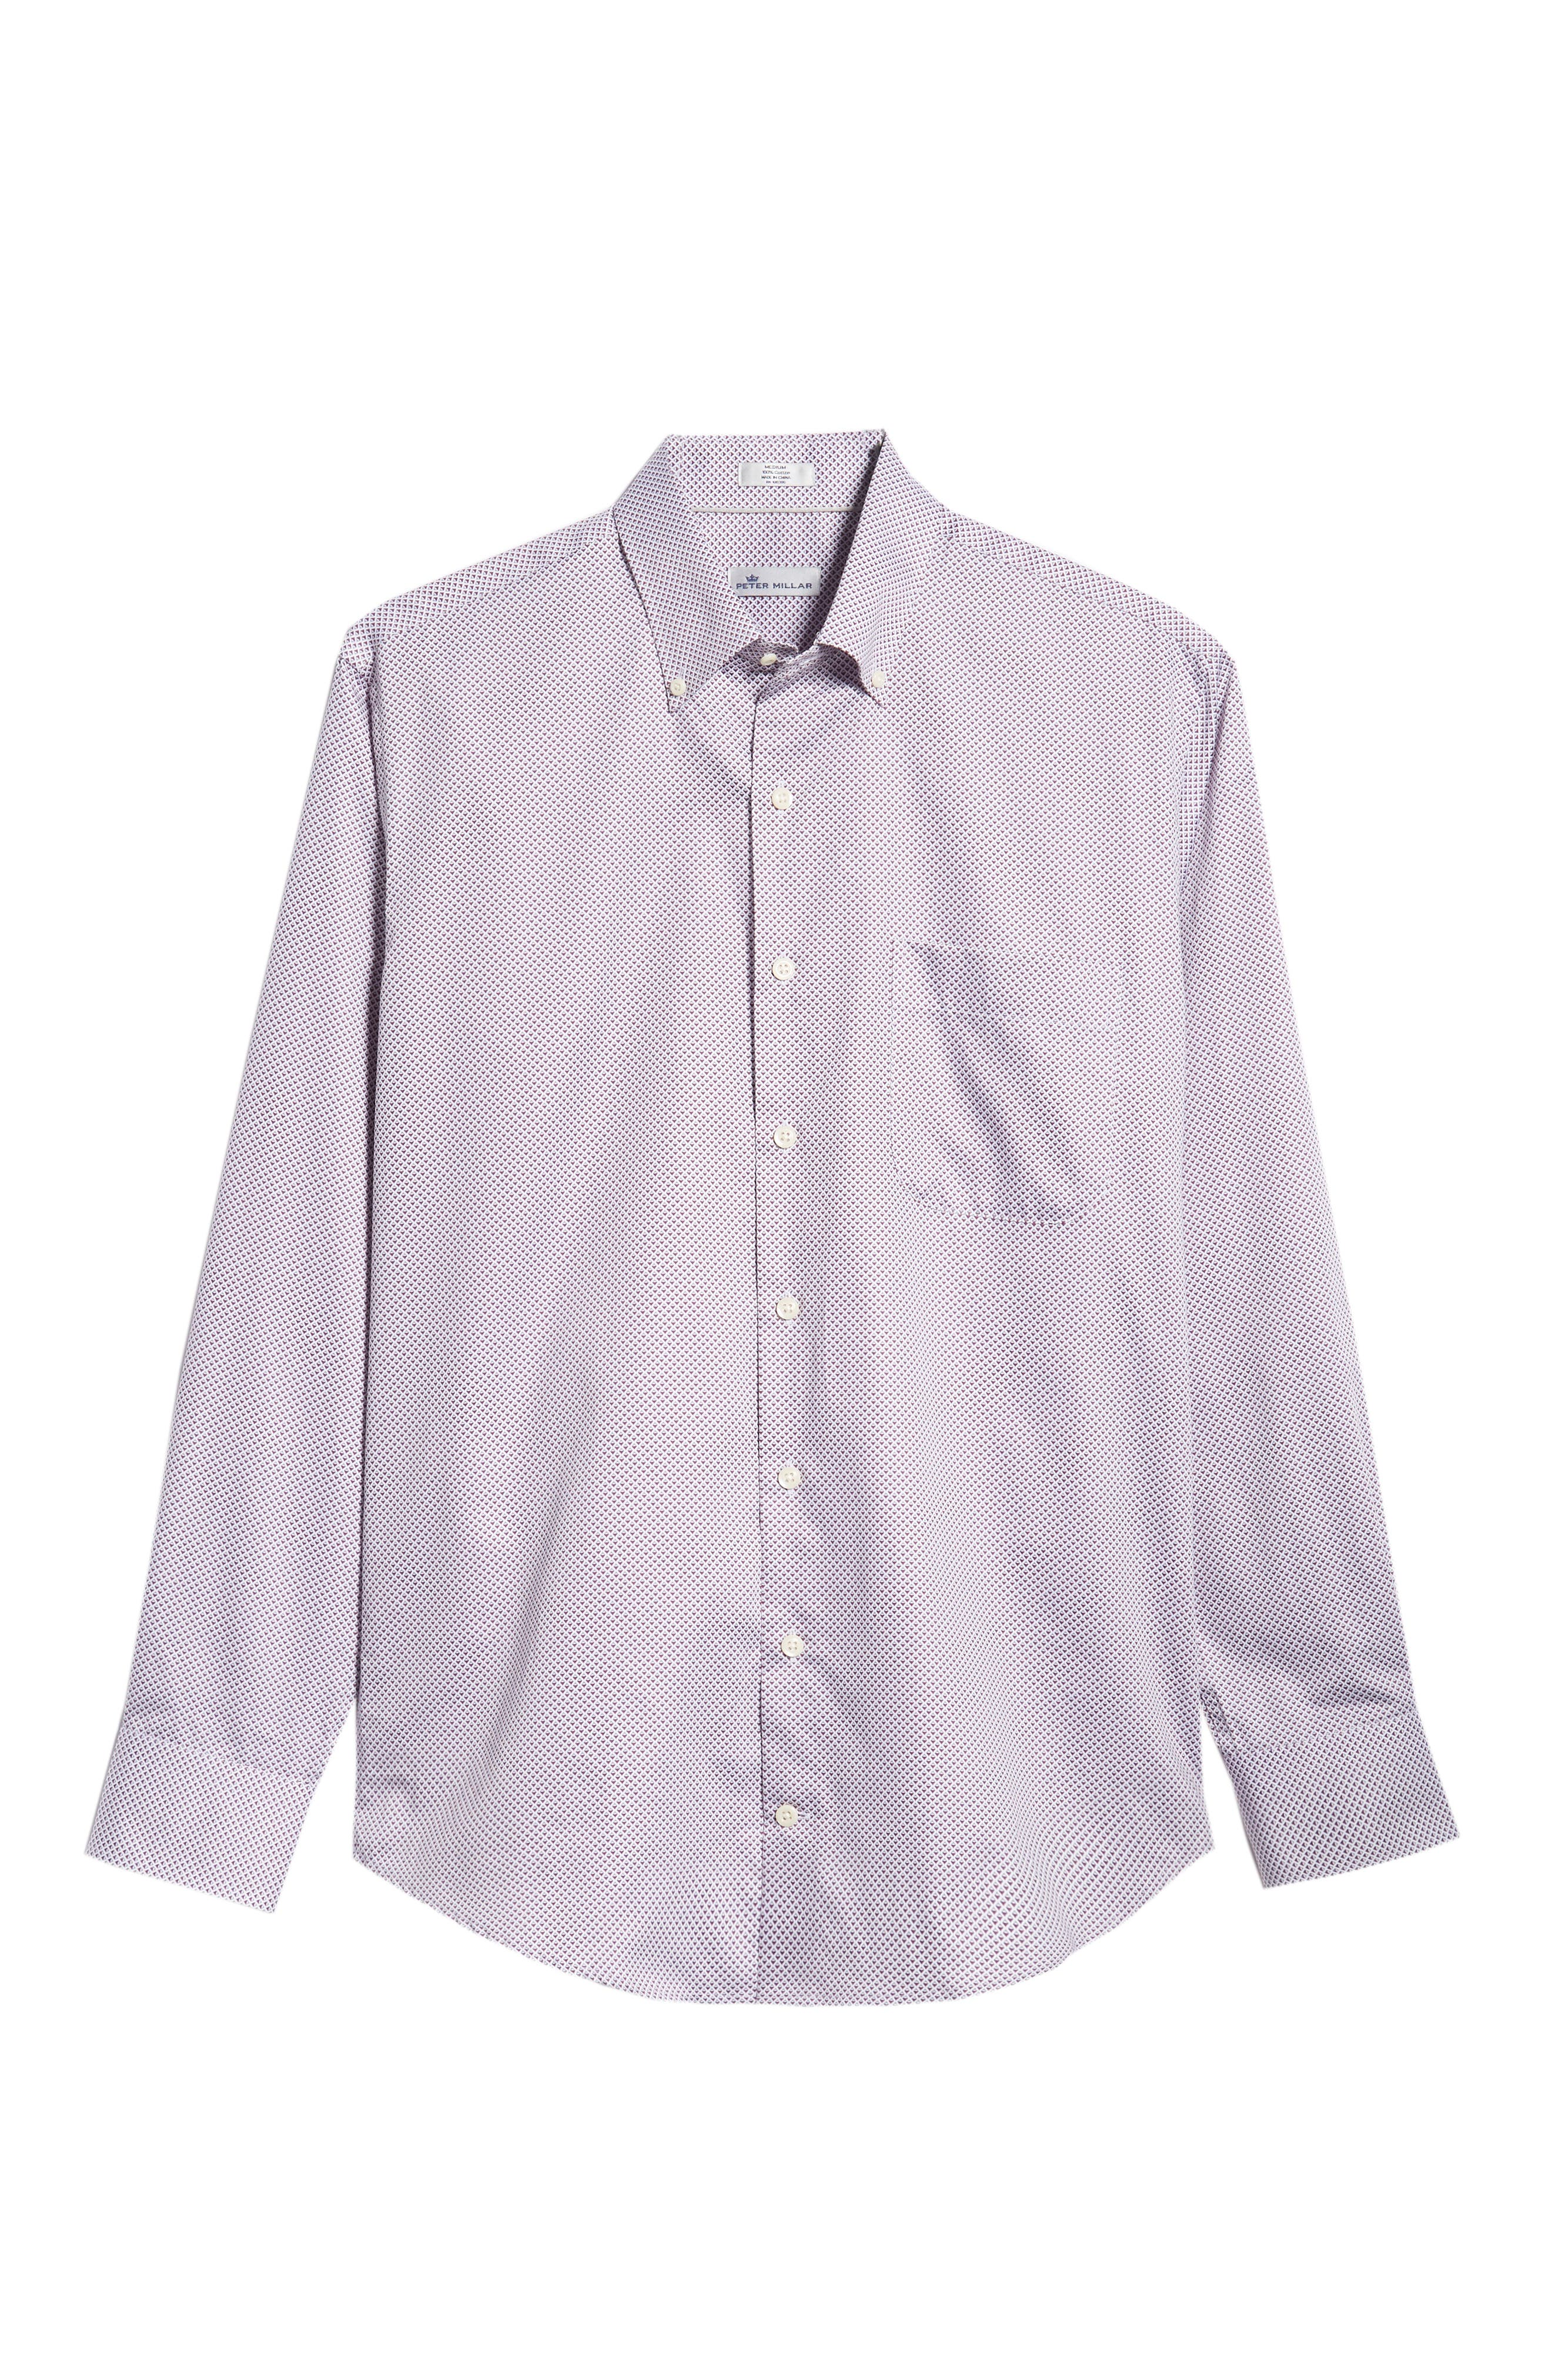 Diamond in the Rough Regular Fit Sport Shirt,                             Alternate thumbnail 5, color,                             WINTERBERRY